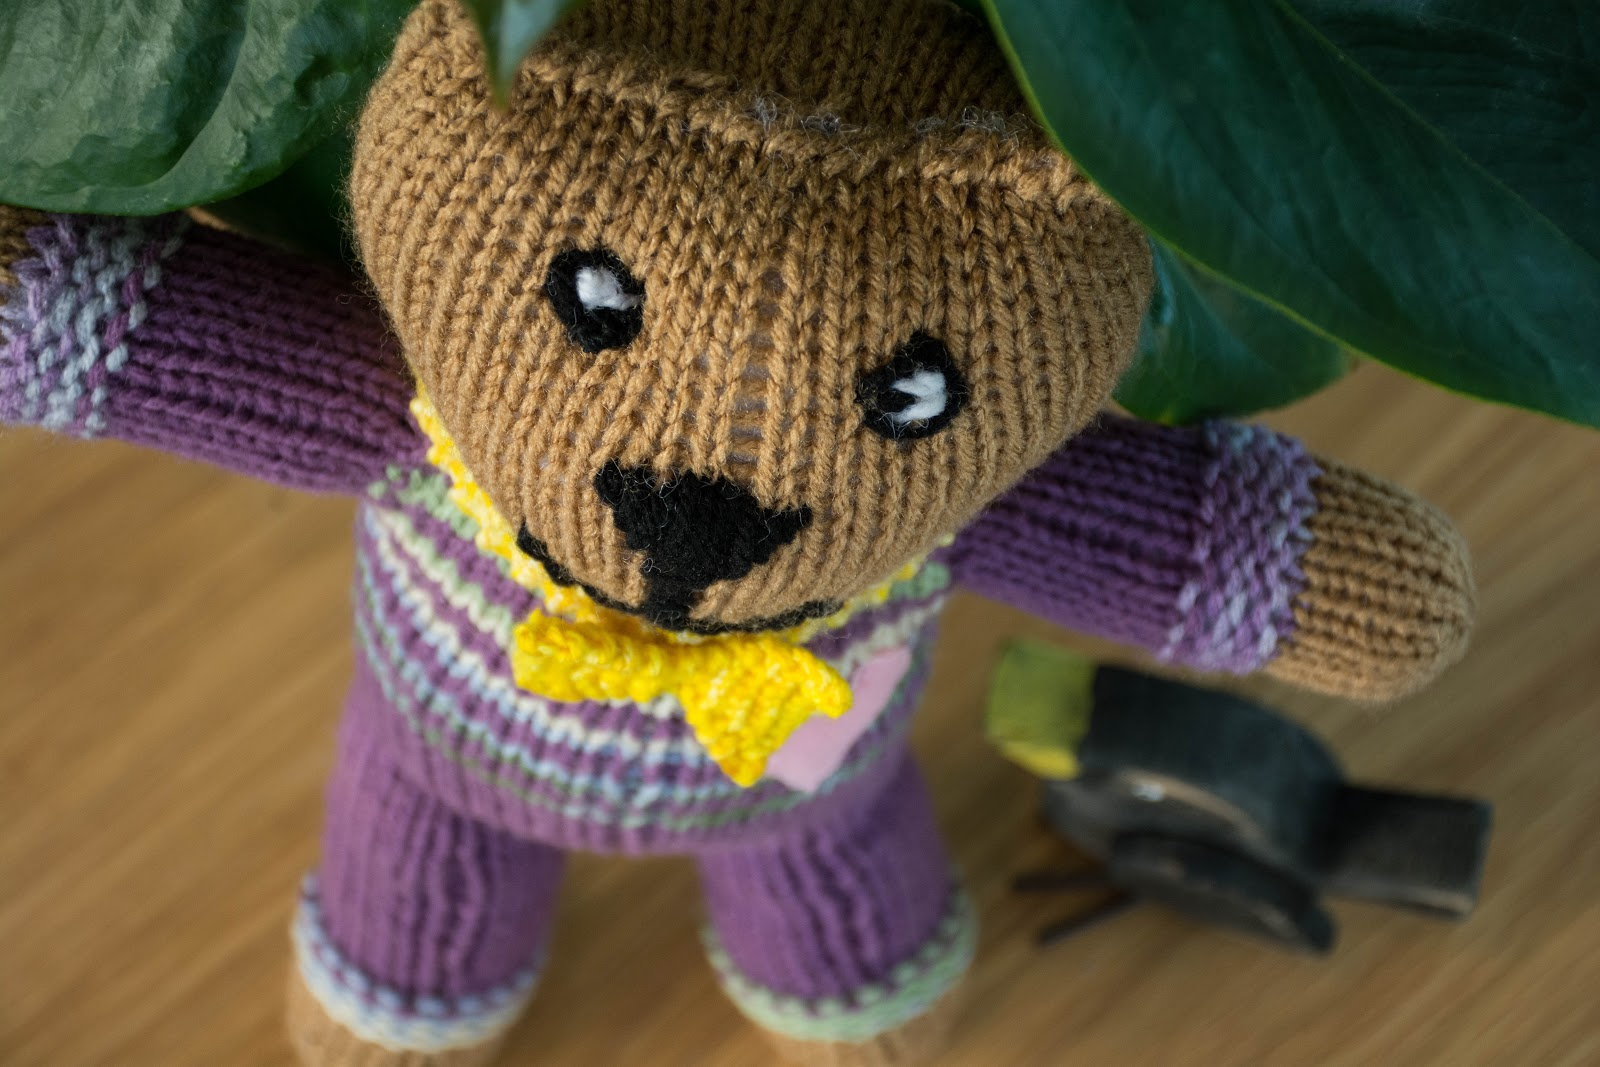 The Knitting Blog by Mr. Puffy the Dog: Mother Bear Project and Knit Bow Tie ...